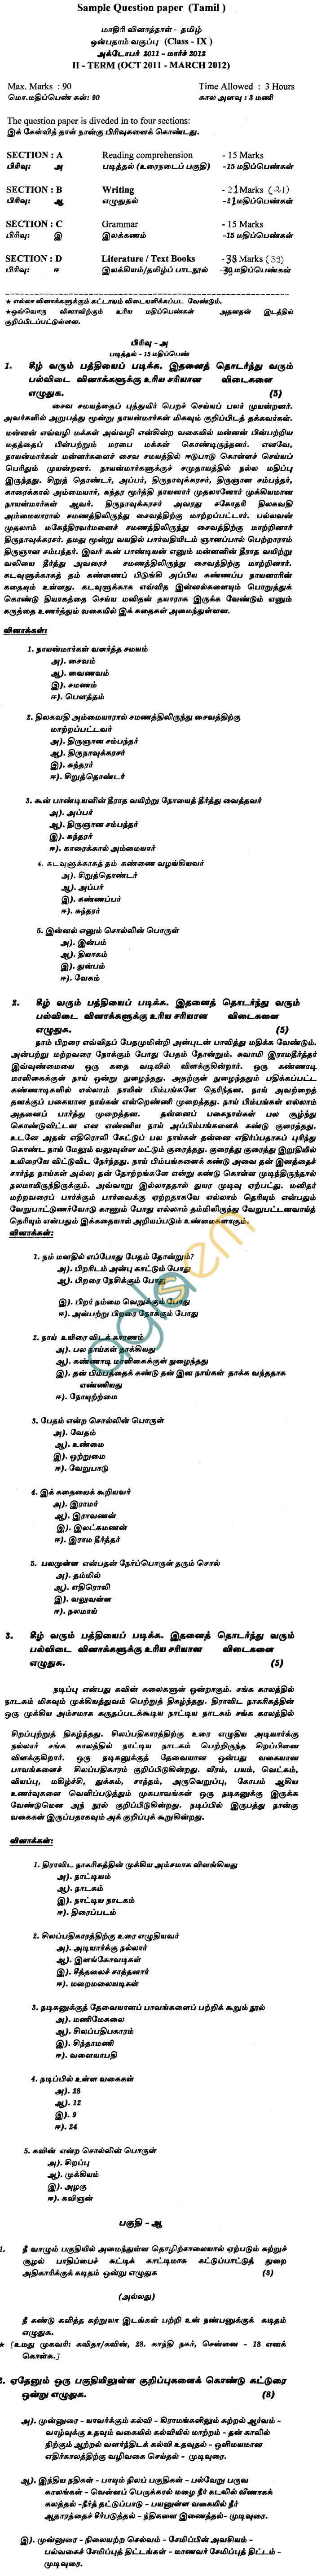 Opinion about school essays in tamil